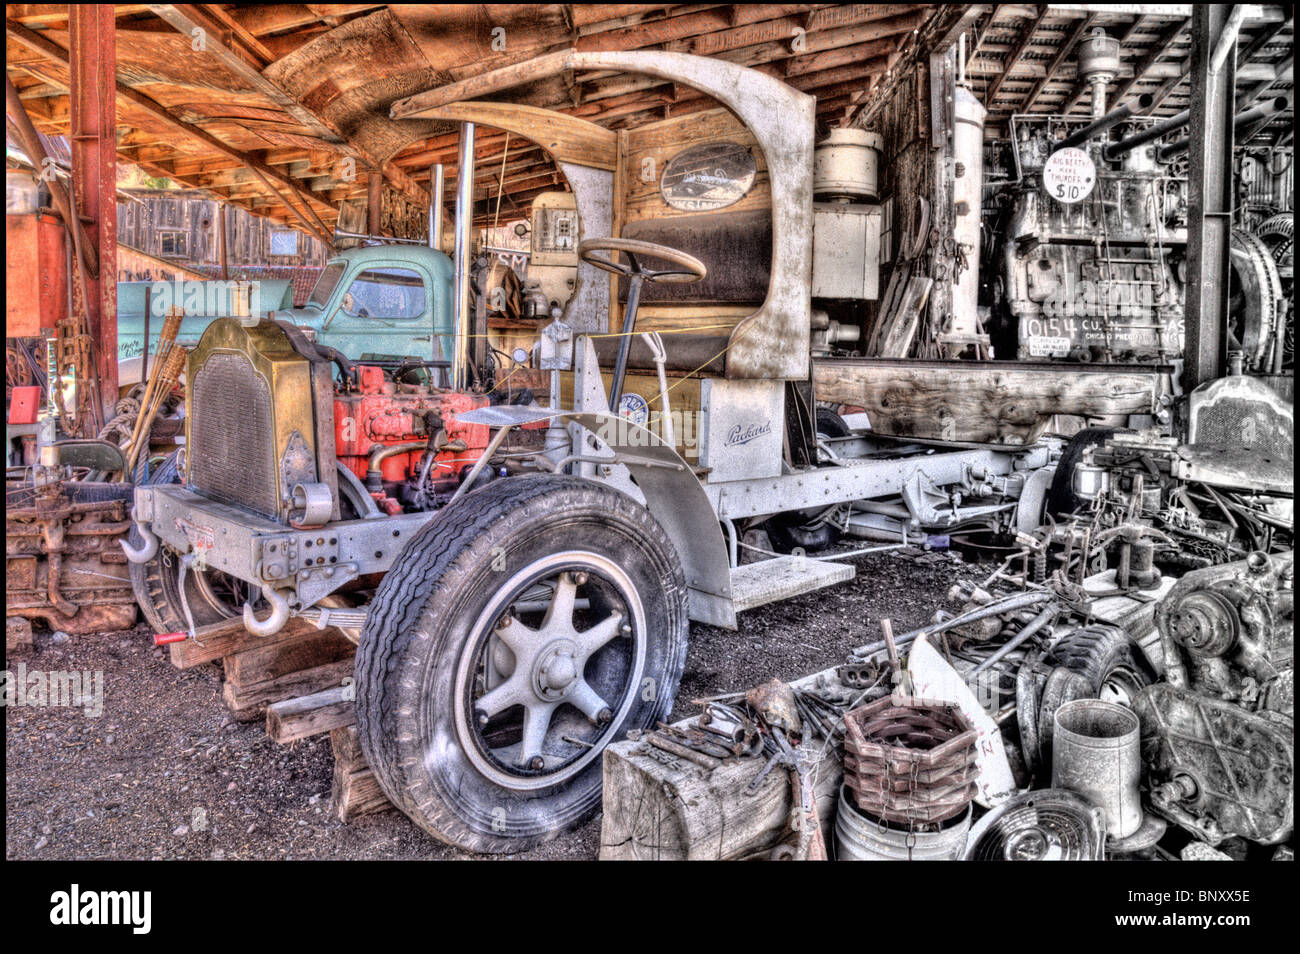 Old Truck in Auto Shop one half Colored and one half Black and White - Stock Image